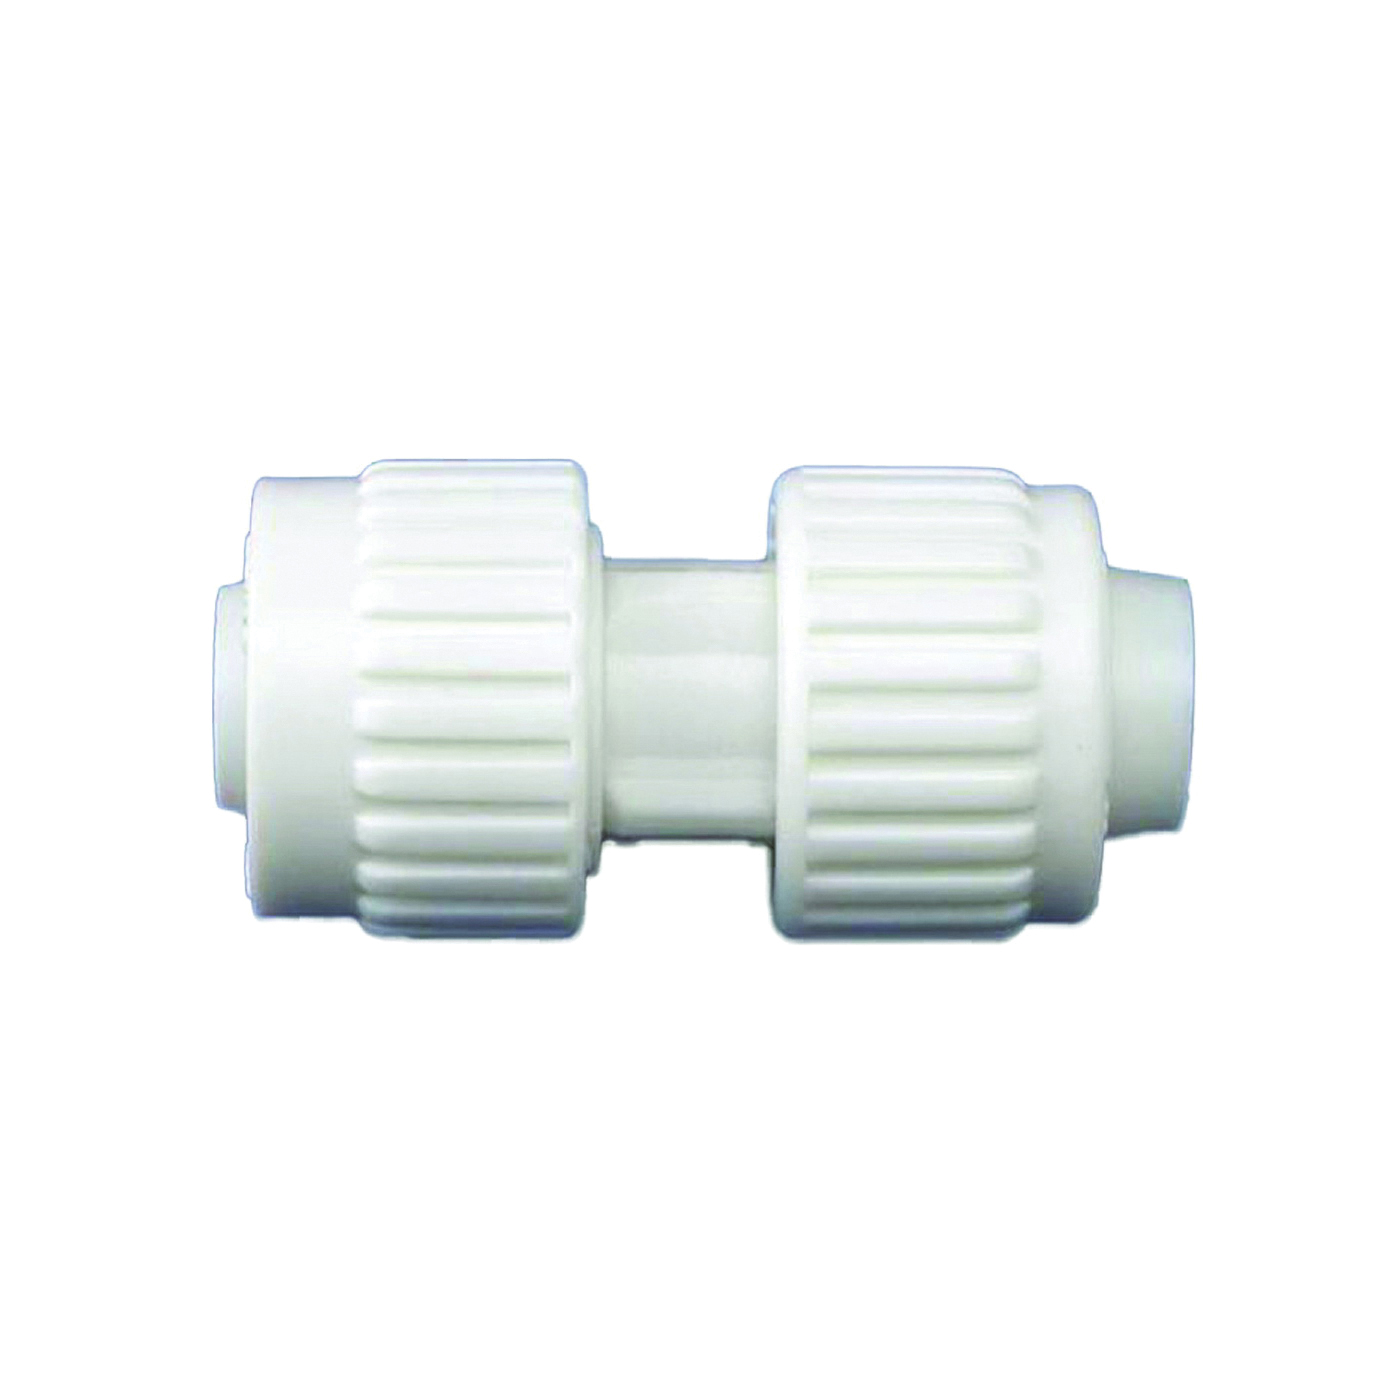 Picture of Flair-It 16844 Pipe Adapter, 3/4 in, PB x PEX, Polyoxymethylene